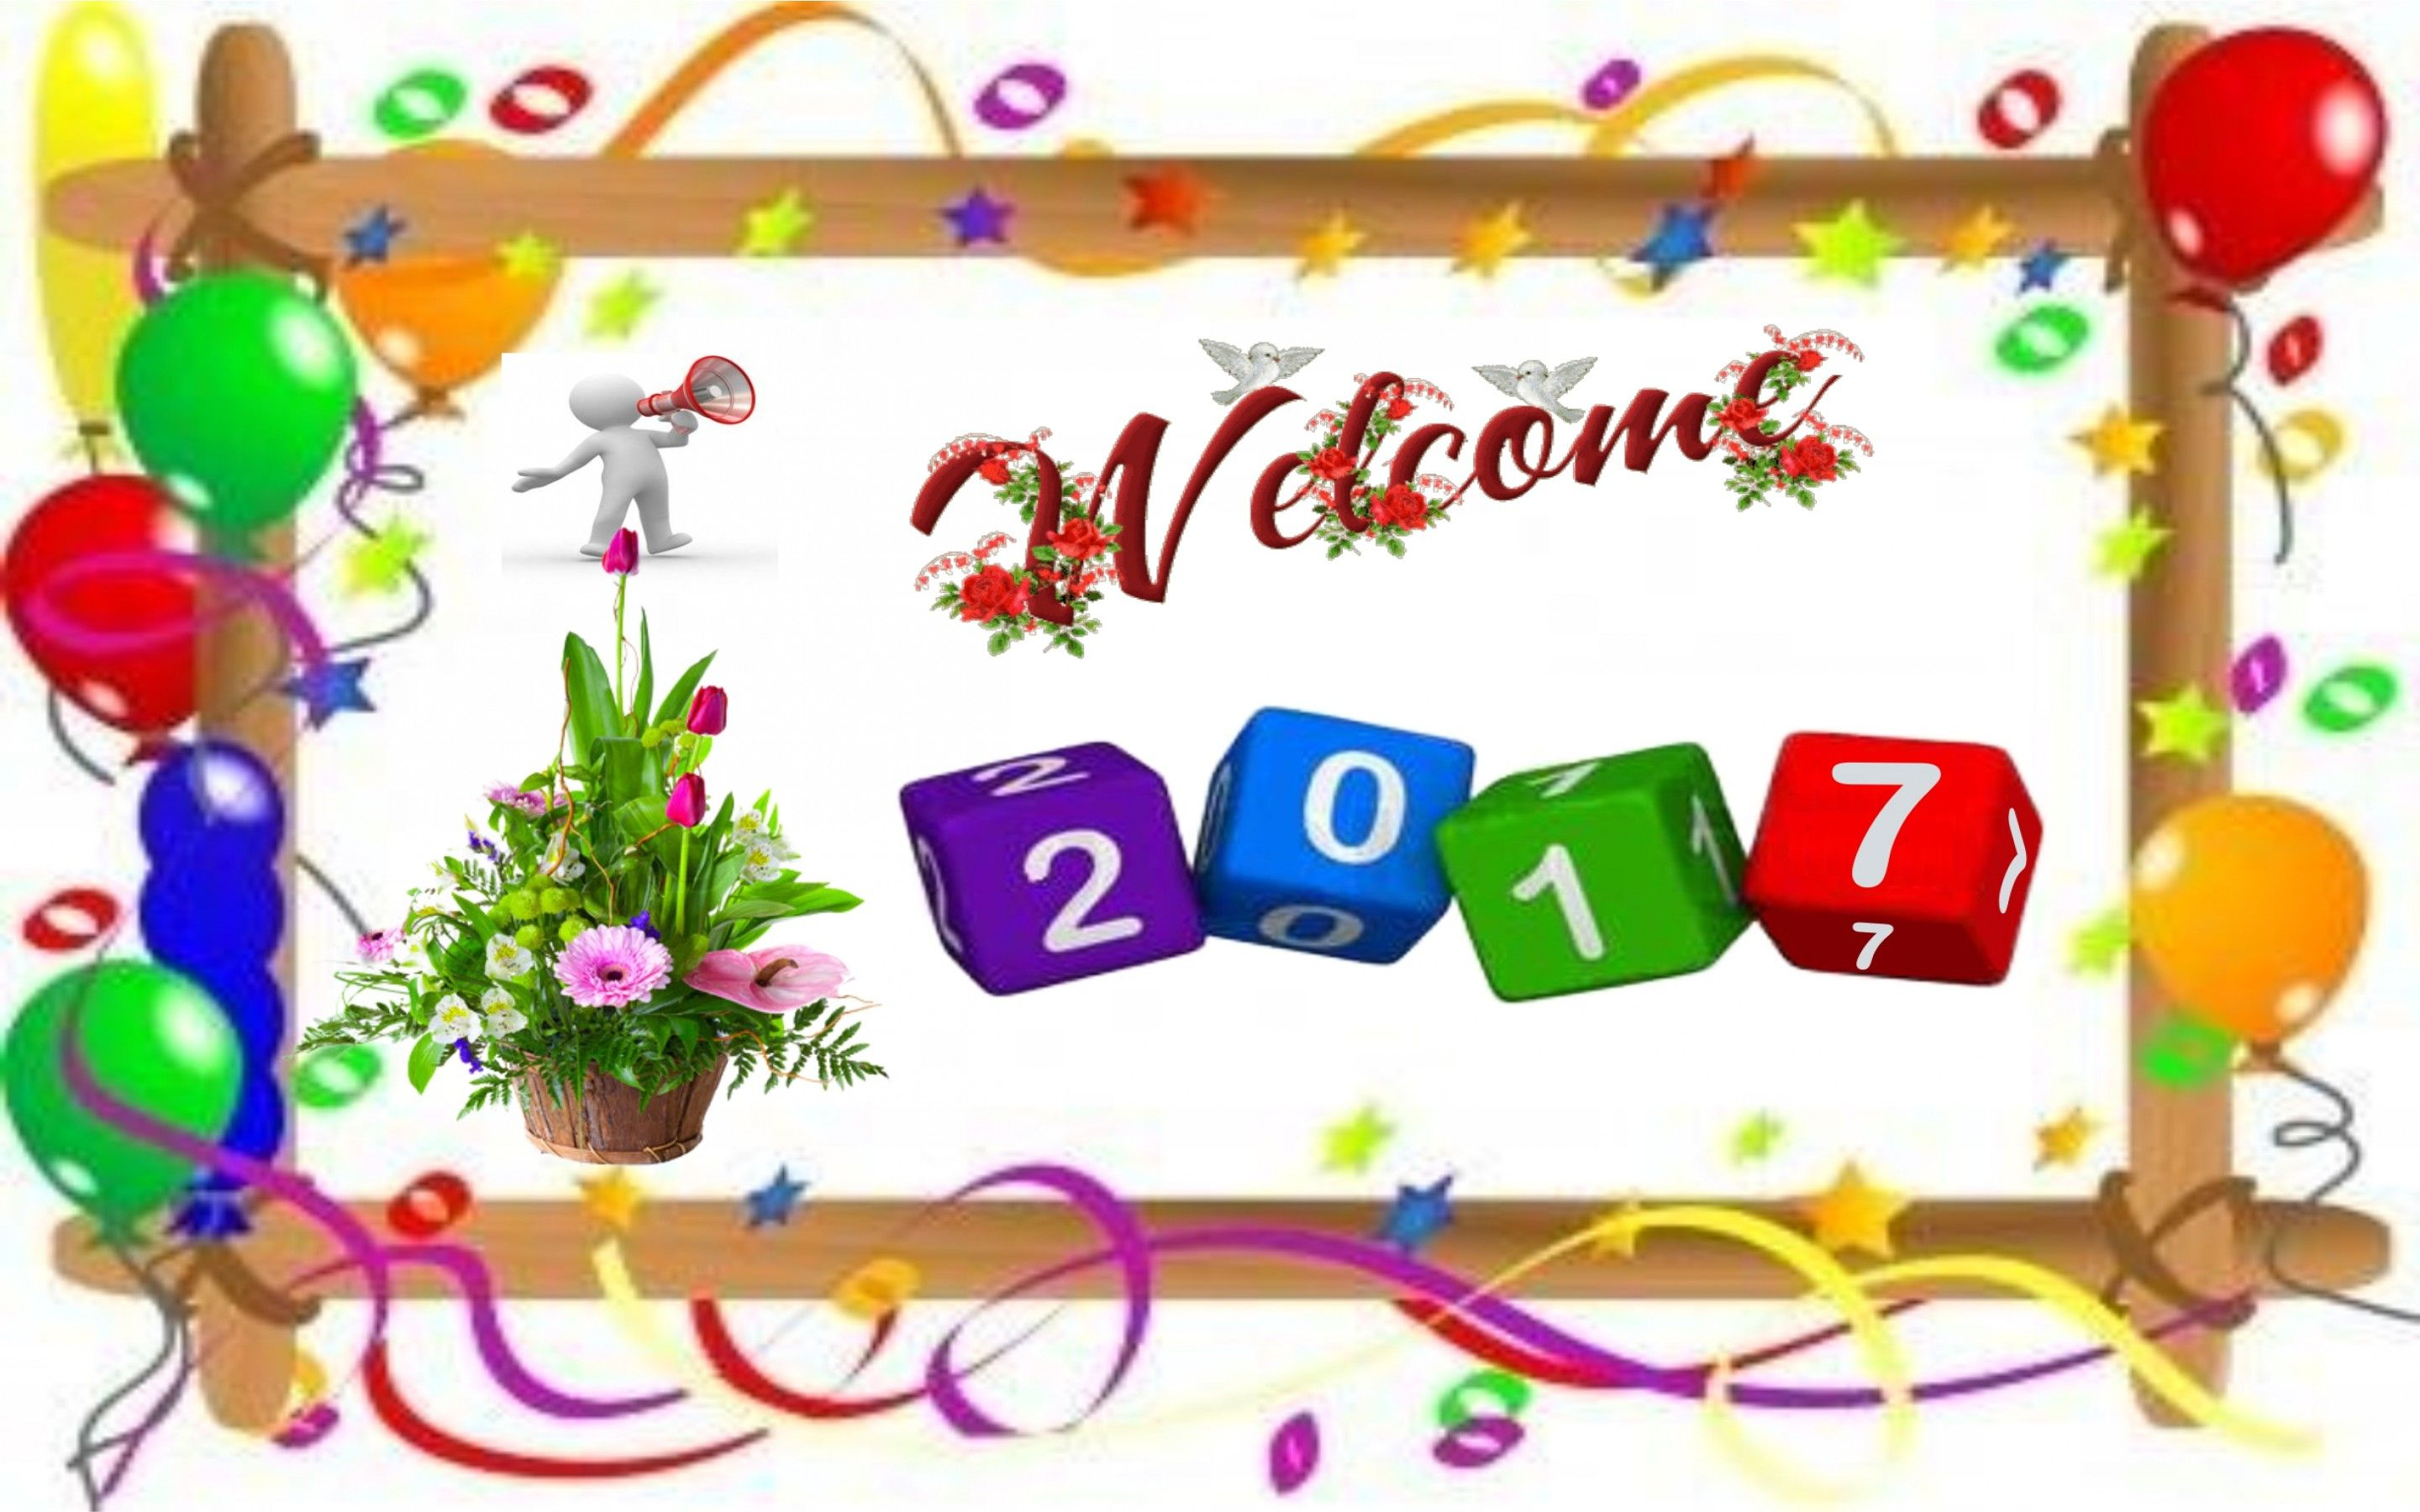 Wallpaper download new year - Just Download Free Happy New Year 2017 Wishes All The Wishes Are Unique And With The Beautiful Picture Concept You Can Send It To You Friends And